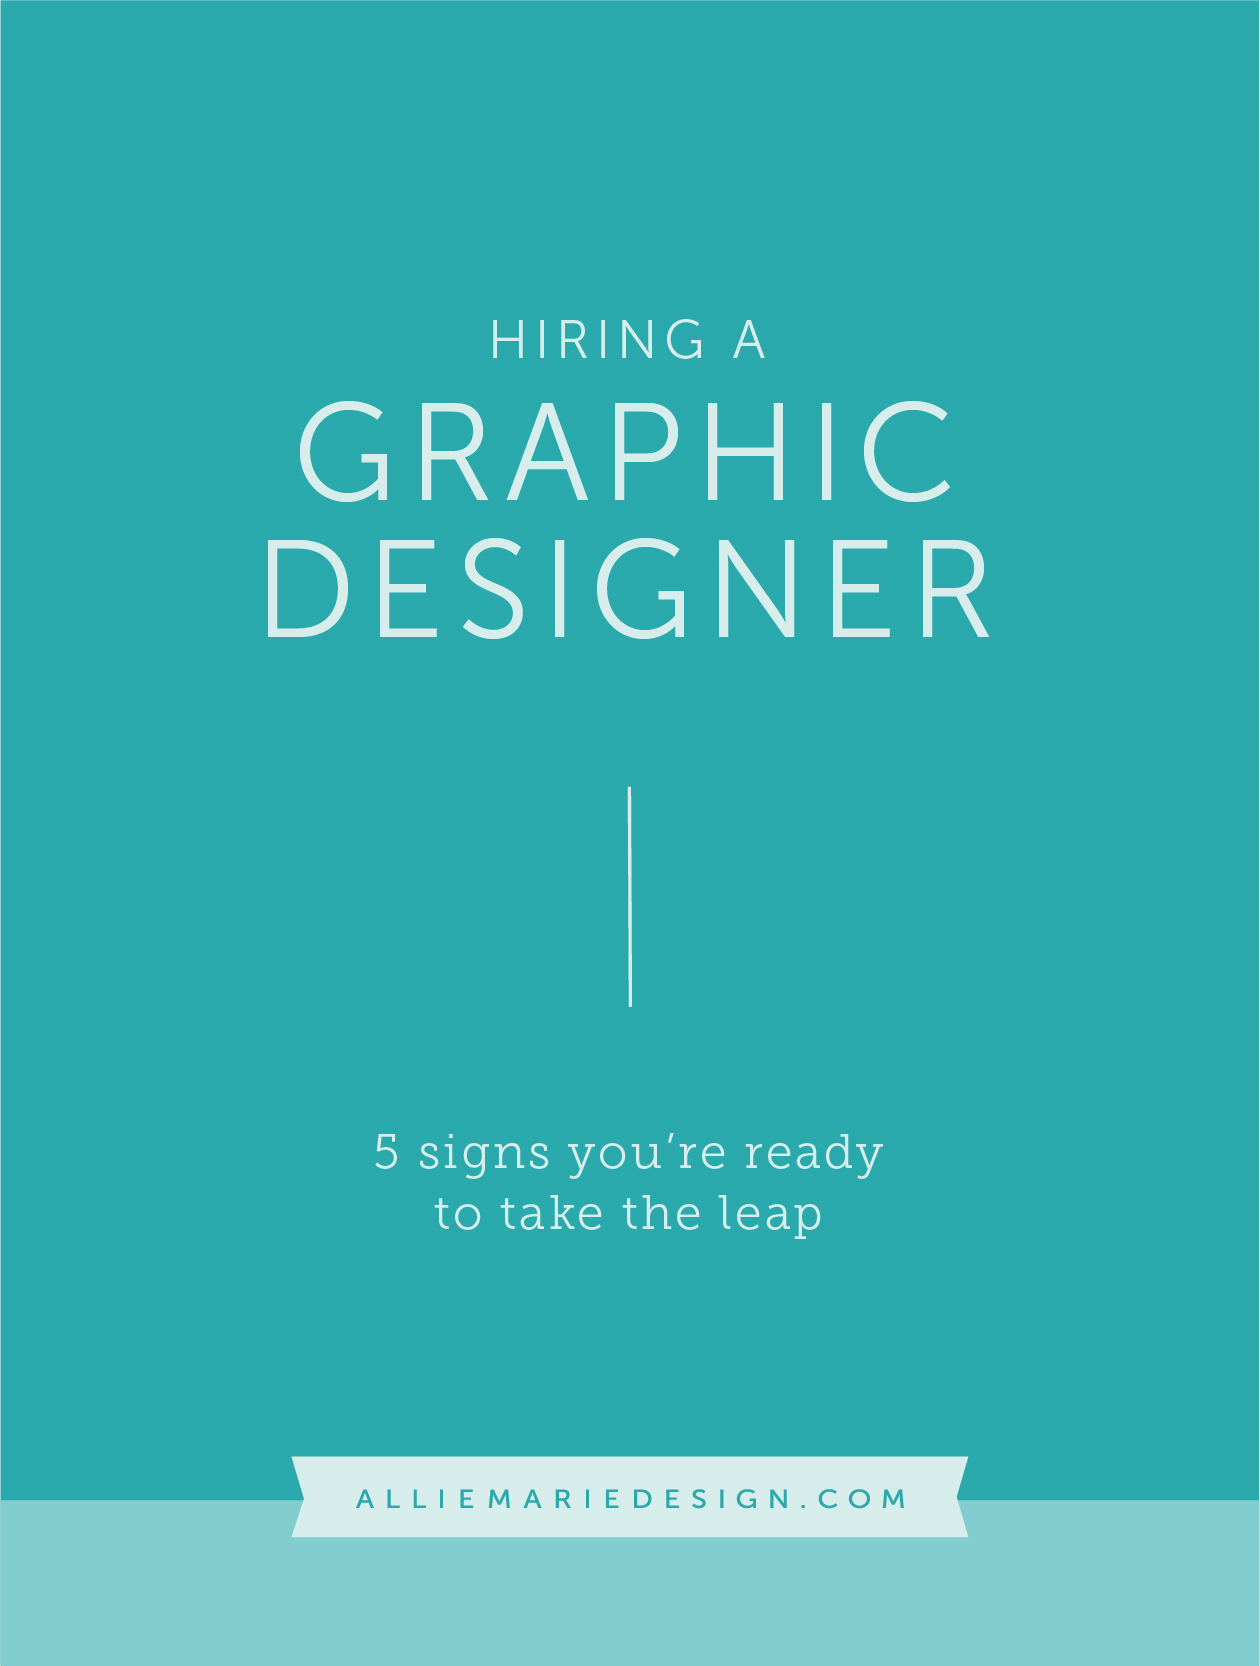 Hiring A Graphic Designer 5 Signs Youre Ready To Take The Leap